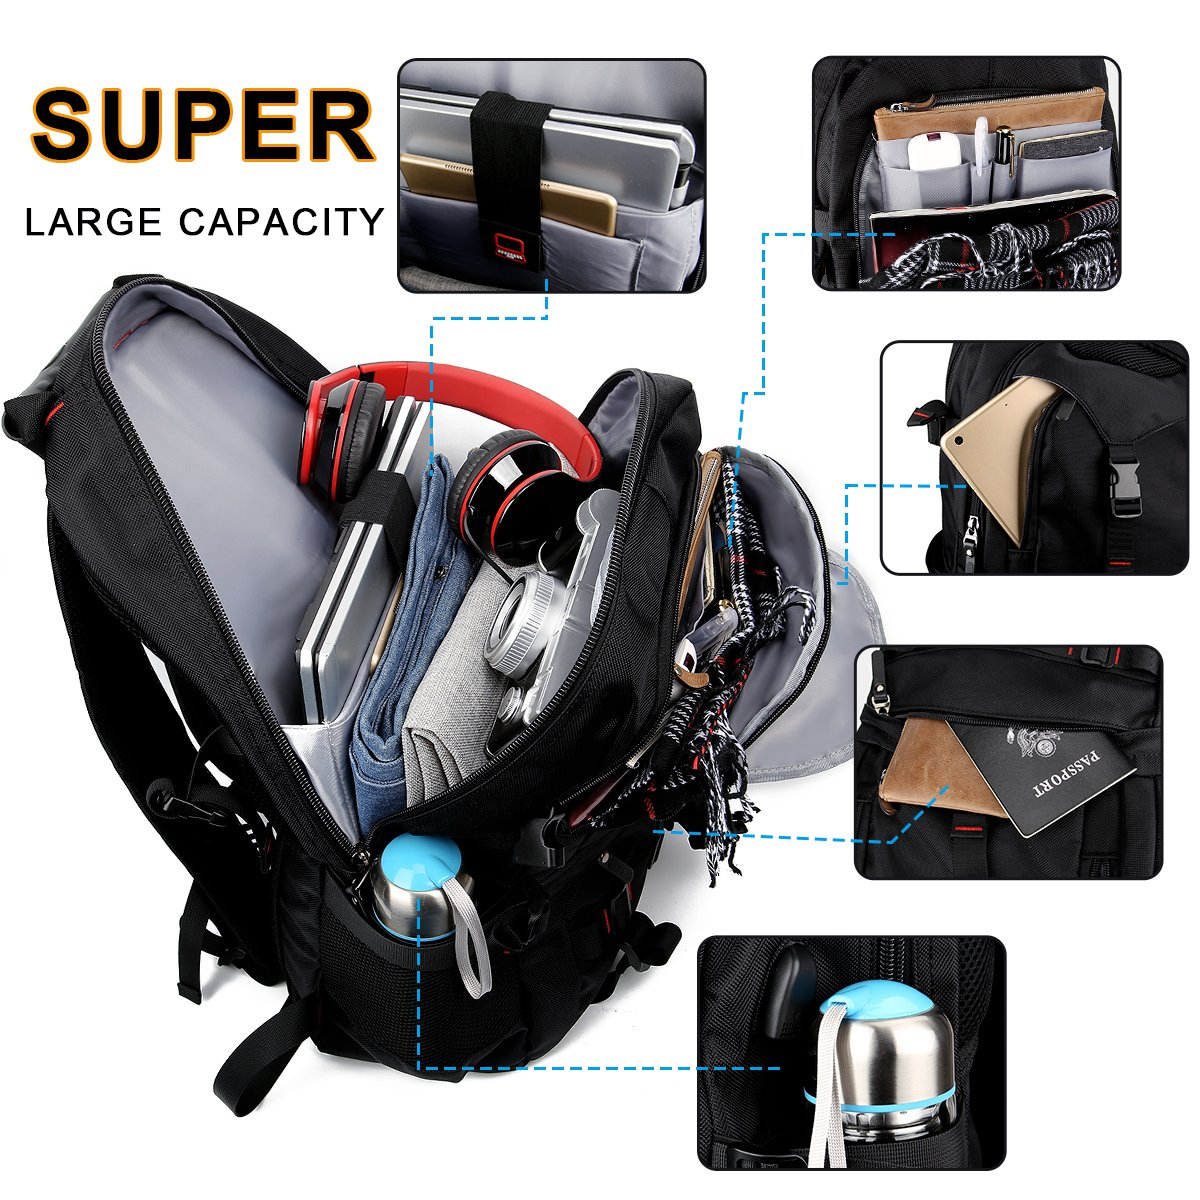 Fashion Laptop Backpack Contains Multi-Function Pockets, Tocode Durable Travel Backpack with USB Charging Port Stylish Anti-Theft School Bag Fits 17.3 Inch Laptop Comfort Pack for Women & Men–Black I by Tocode (Image #4)